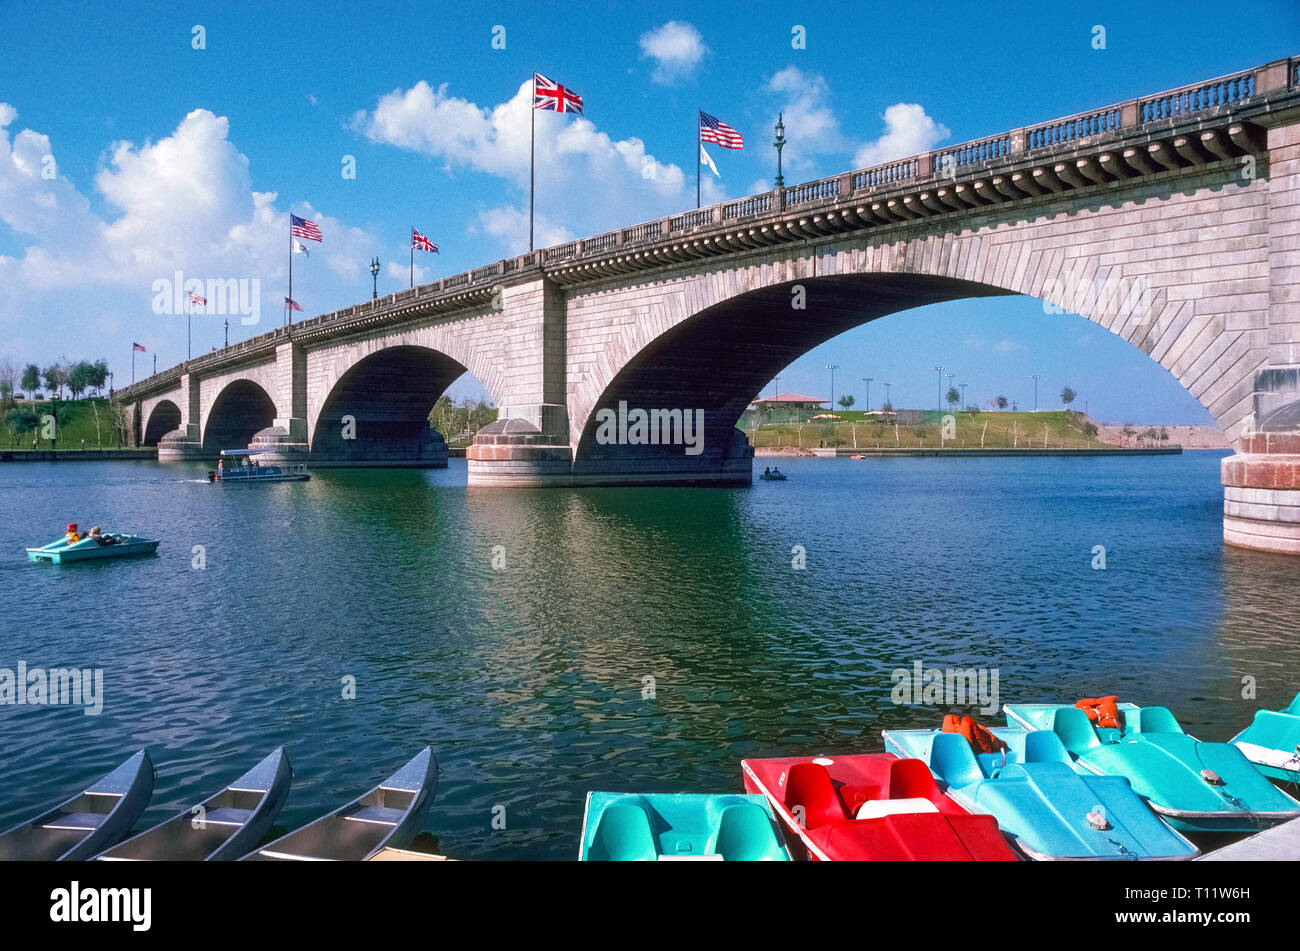 This is the 1831 London Bridge that crossed the River Thames in England for 131 years until it was dismantled and then reassembled in 1971 in Lake Havasu City in the western state of Arizona, USA. Water from the Colorado River now flows under the granite bridge, which was bought at auction from the City of London for $2.5 million by American entrepreneur Robert P. McCulloch. He wanted a major attraction to entice new residents as well as tourists to the city he founded in 1963 as a lakeside oasis in the Sonoran Desert. Historical photograph. - Stock Image